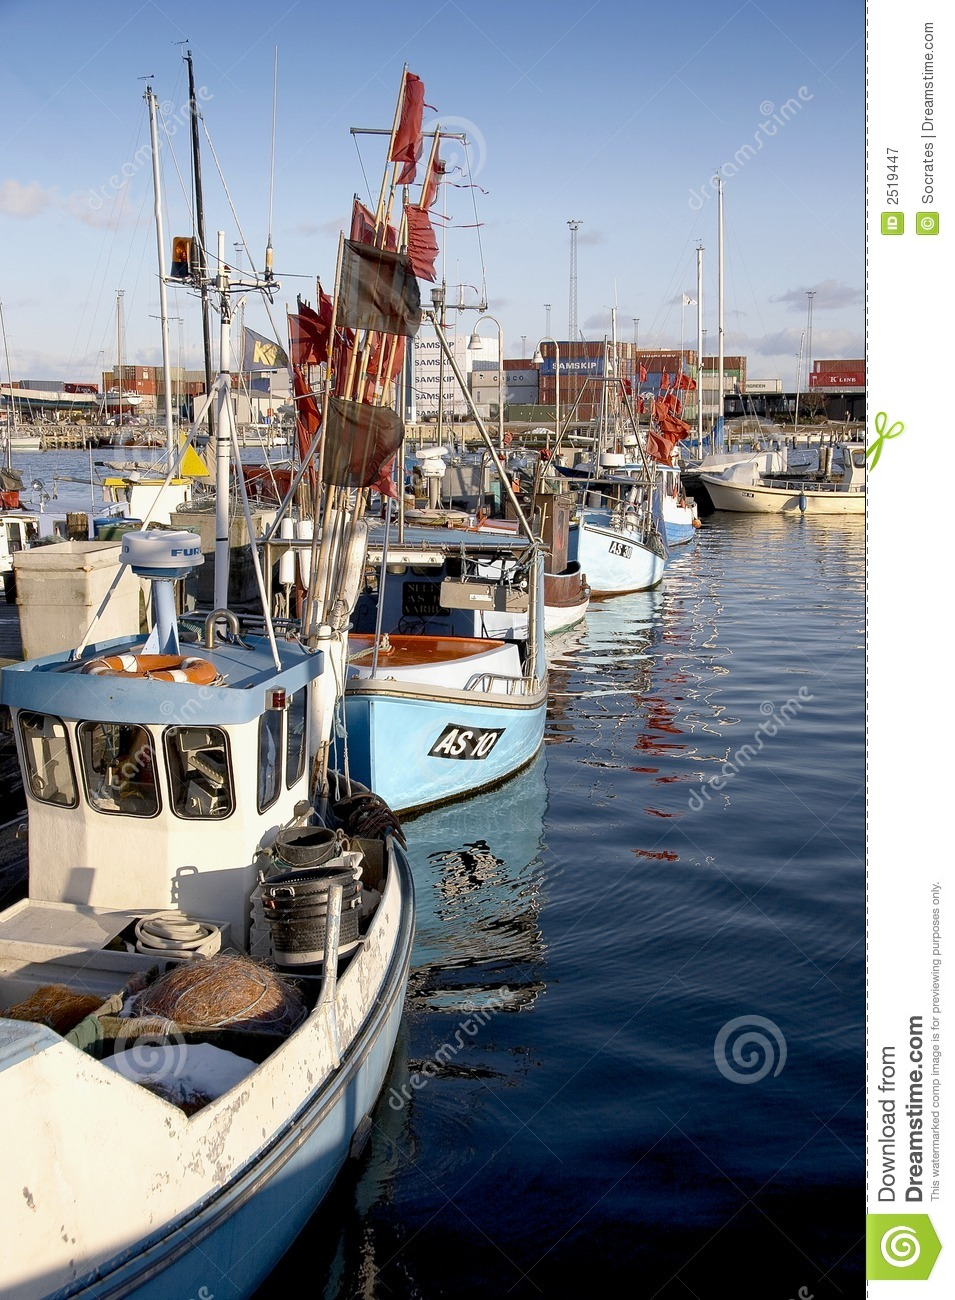 Fishing boats royalty free stock photography image 2519447 for Free fishing boats